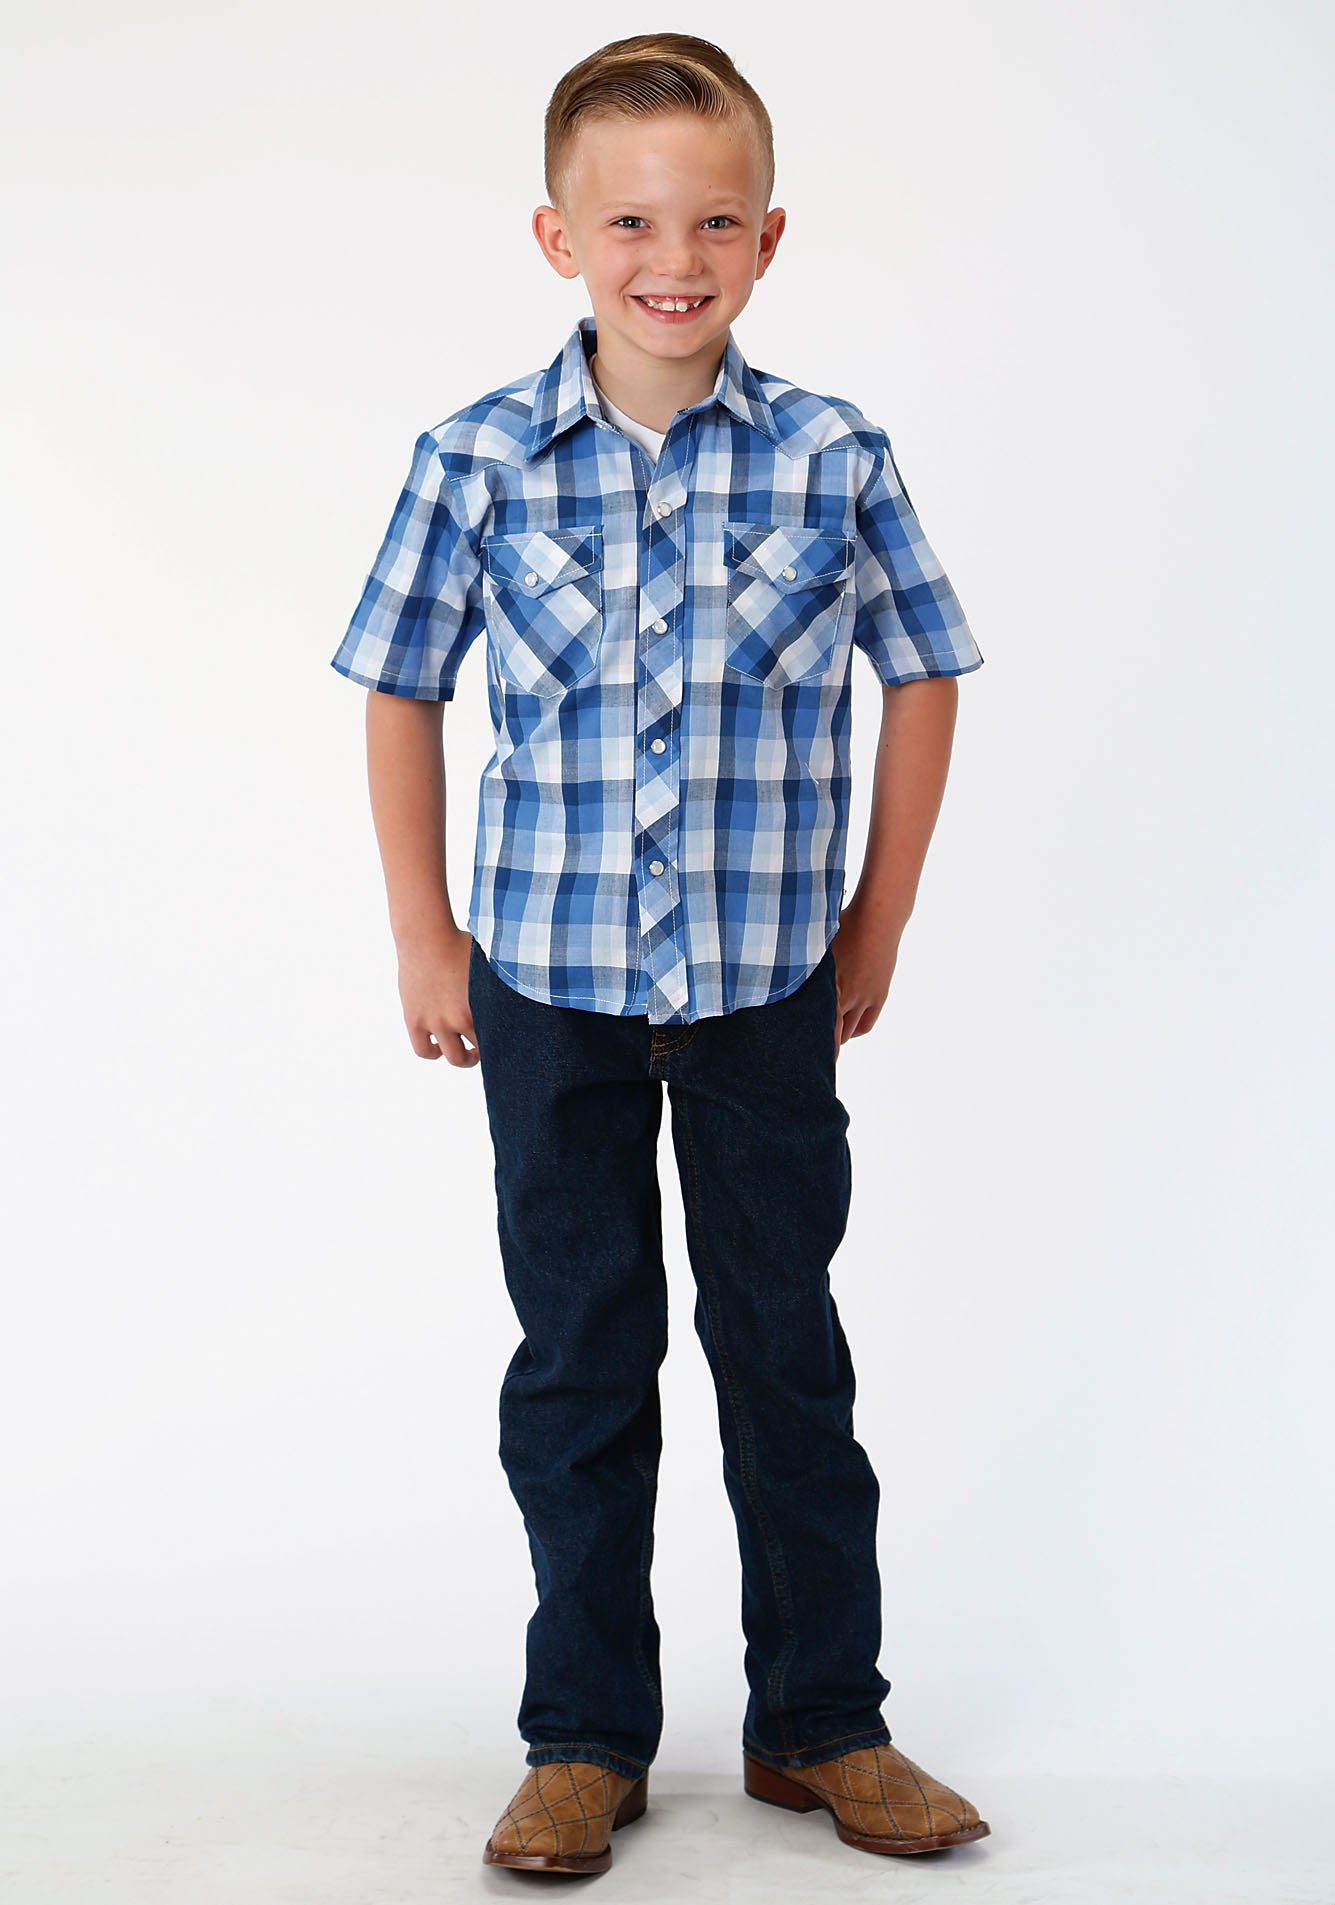 ROPER BOYS BLUE 00043 MULTI BLUE PLAID KARMAN CLASSICS- 55/45 PLAID SHORT SLEEVE